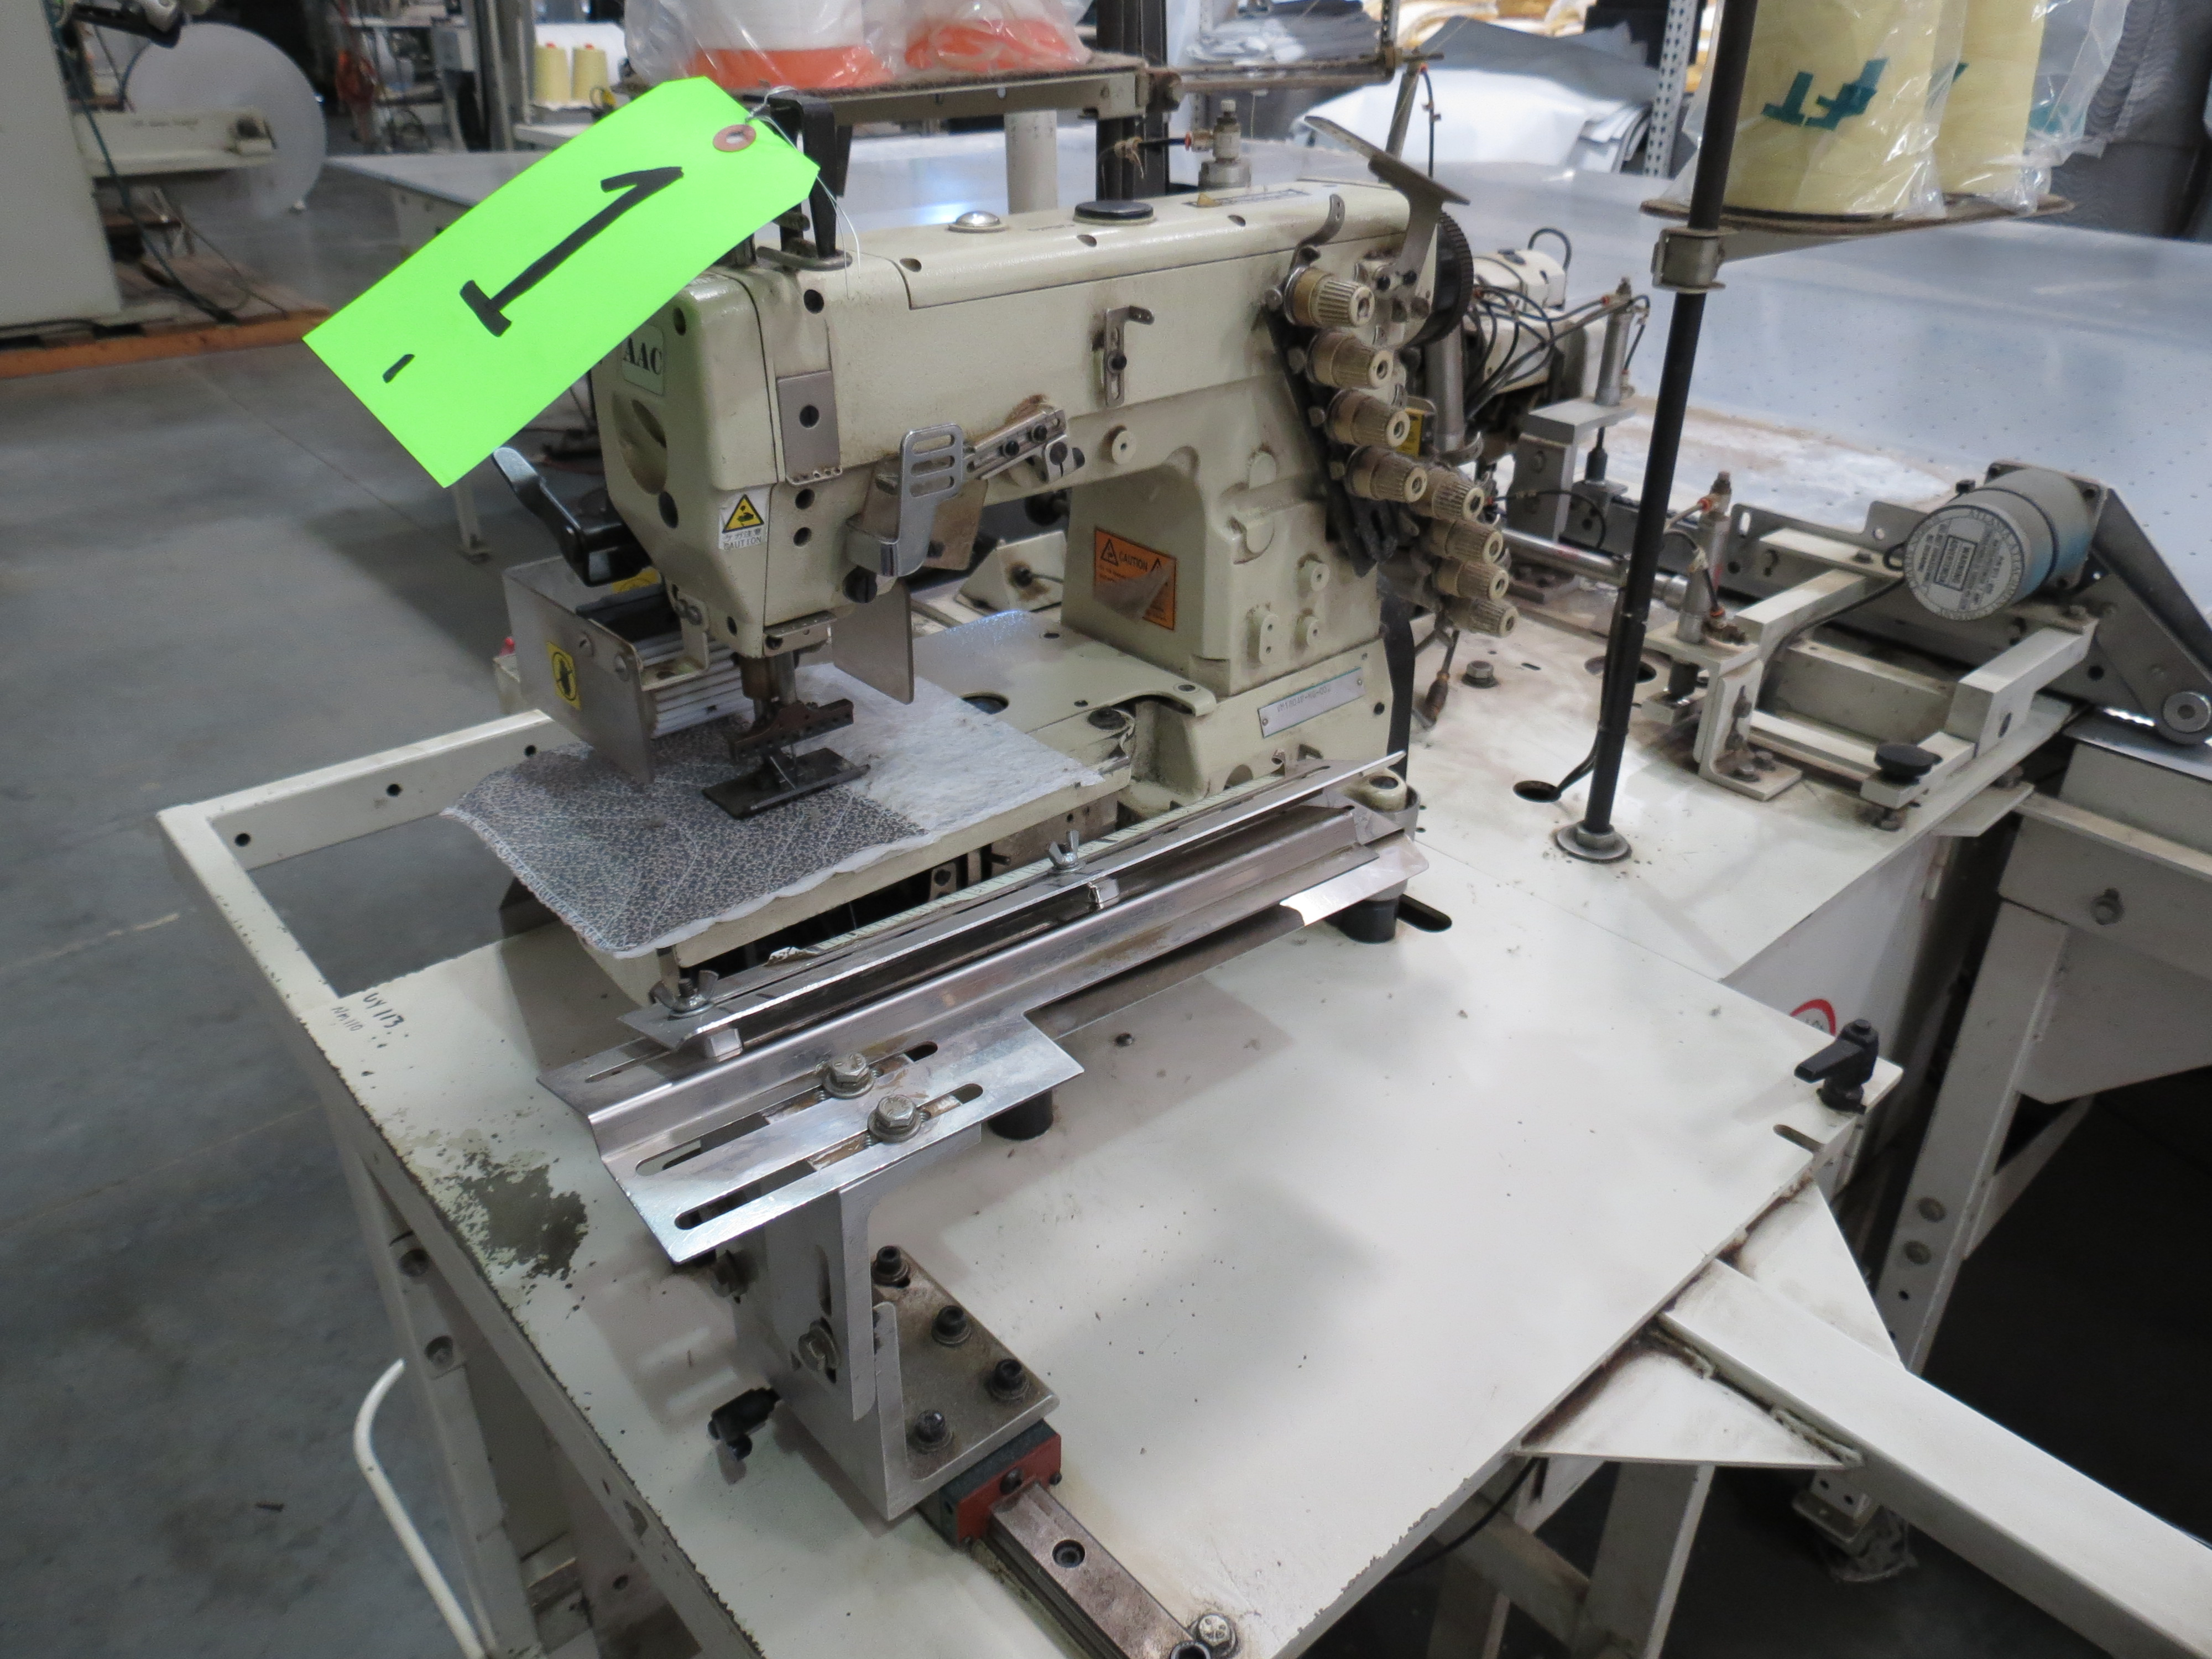 Atlanta Attachment Company VM1804P-NG-002 Gusset Sewing Machine with Flotation Table 8' x 13' - Image 3 of 8